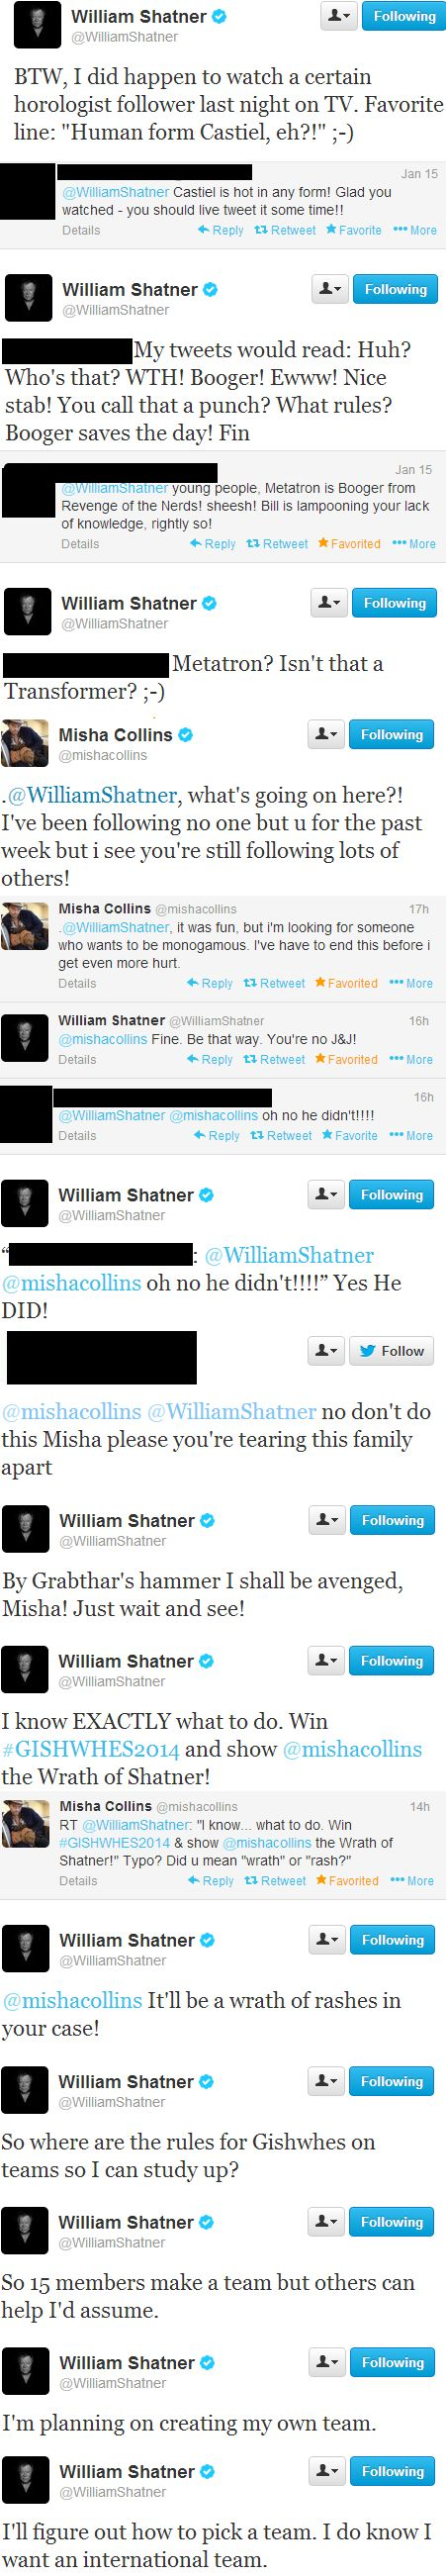 William Shatner and Misha Collins on Twitter; in which Bill watches Supernatural, Misha unfollows him, and Bill swears revenge